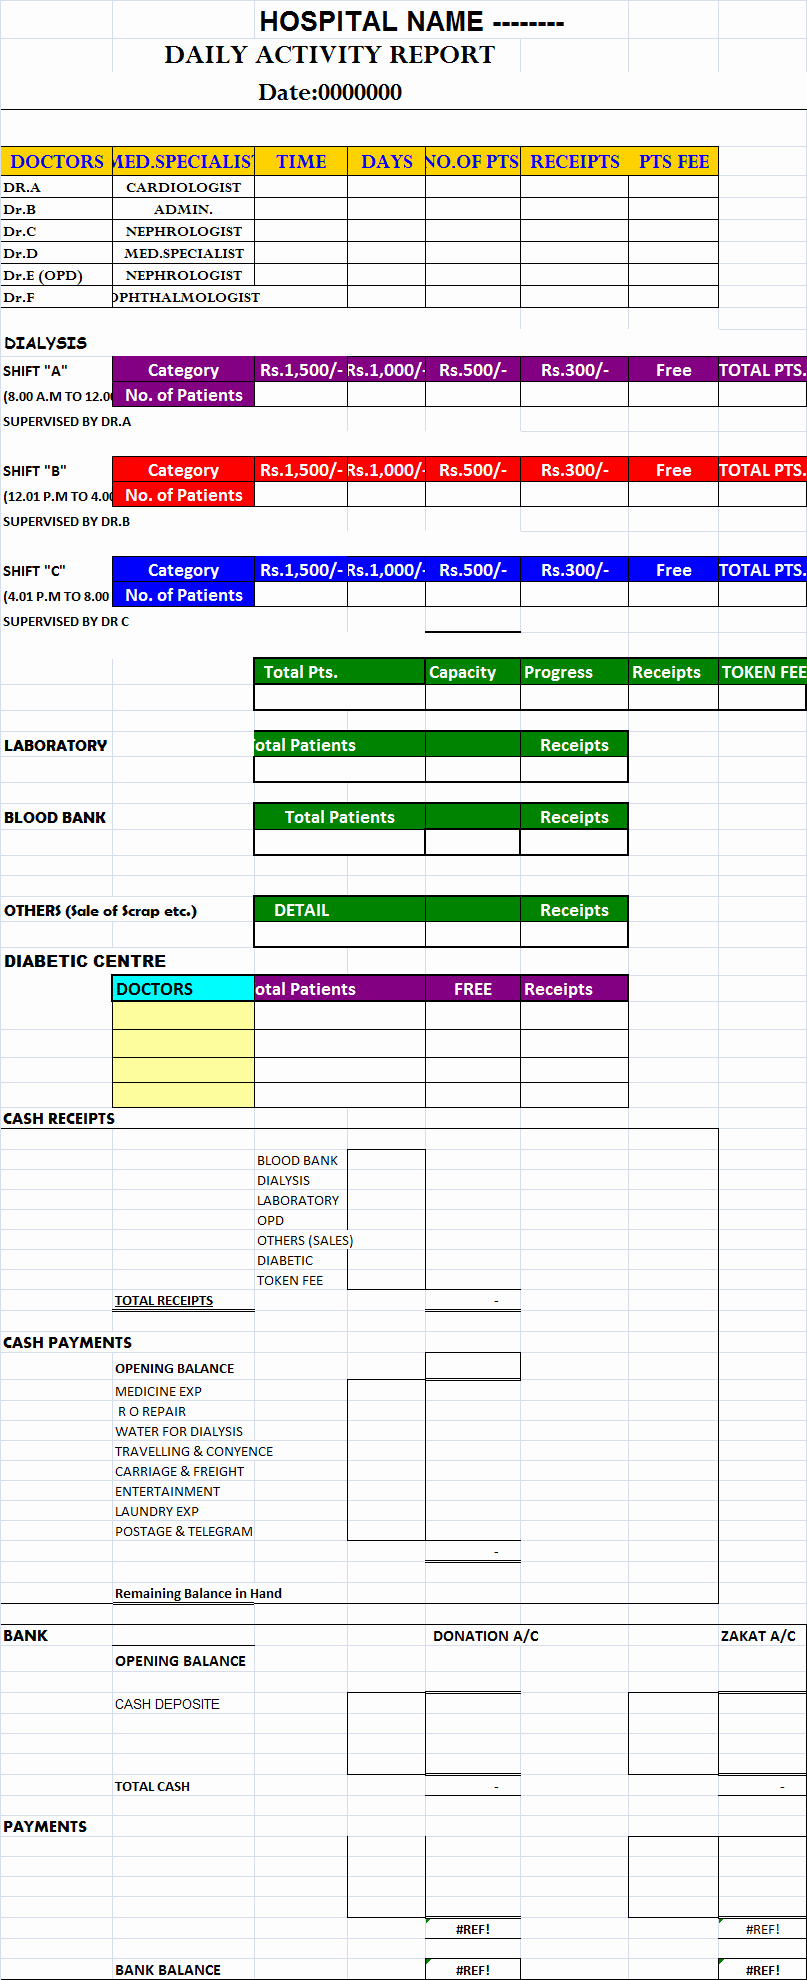 Weekly Activity Report Template Excel Luxury Daily Hospital Report Template – Free Report Templates